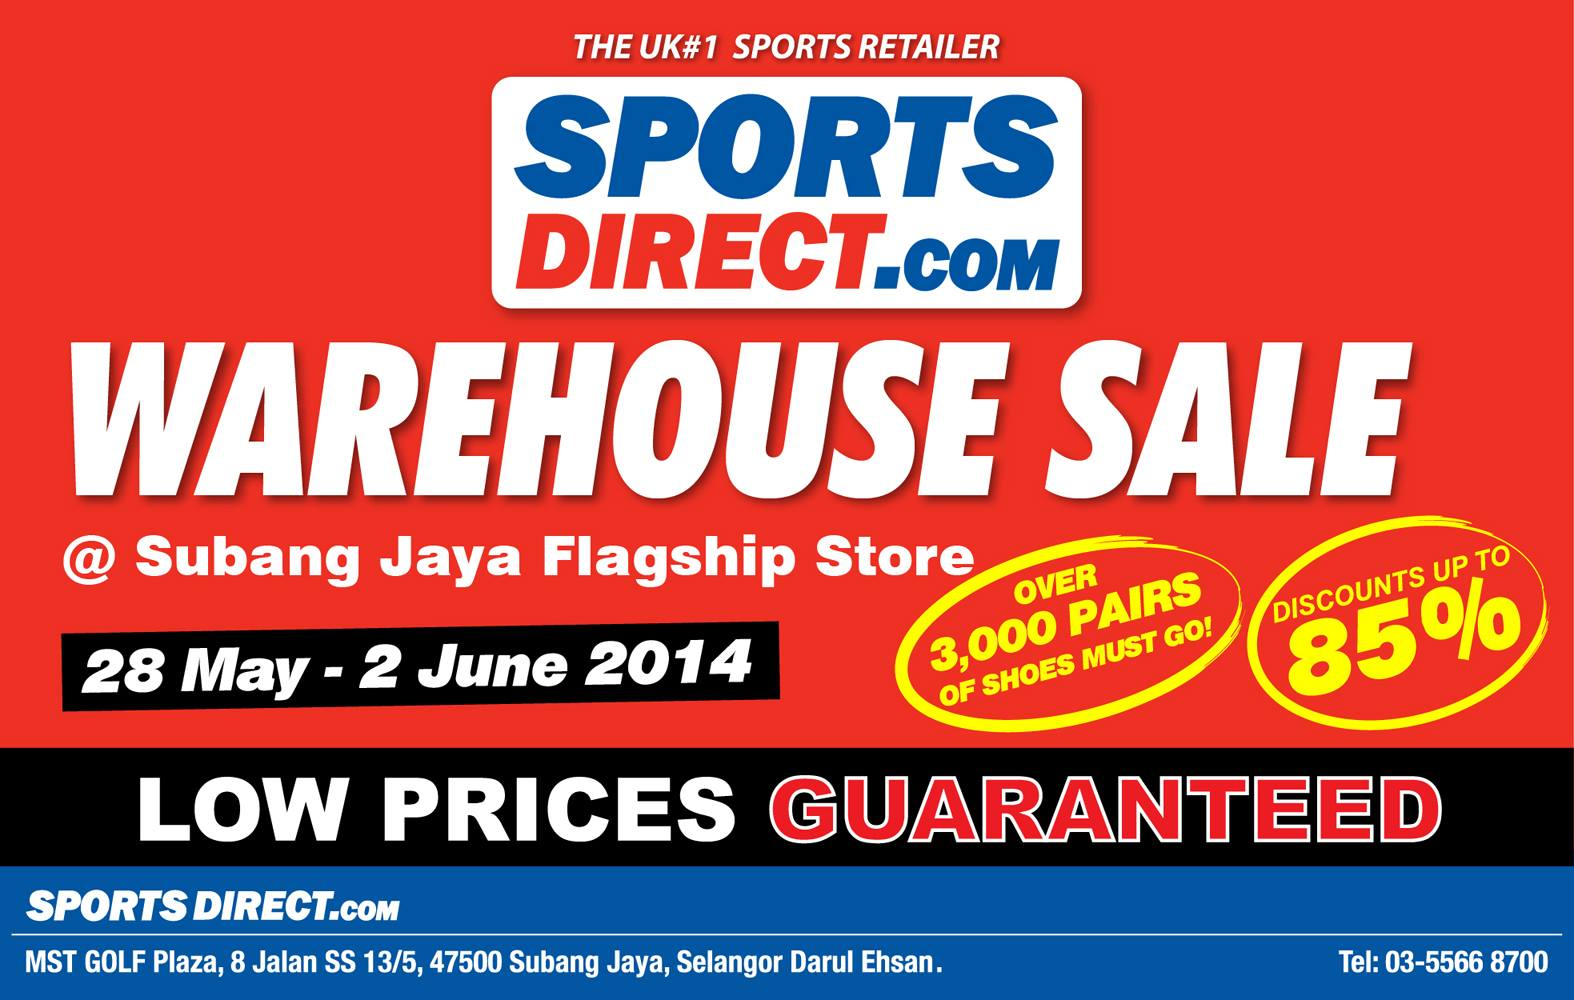 SportsDirect Malaysia Sportswear Warehouse Sale Clearance for Nike, Adidas, Puma & more (28 May - 2 June 2014)